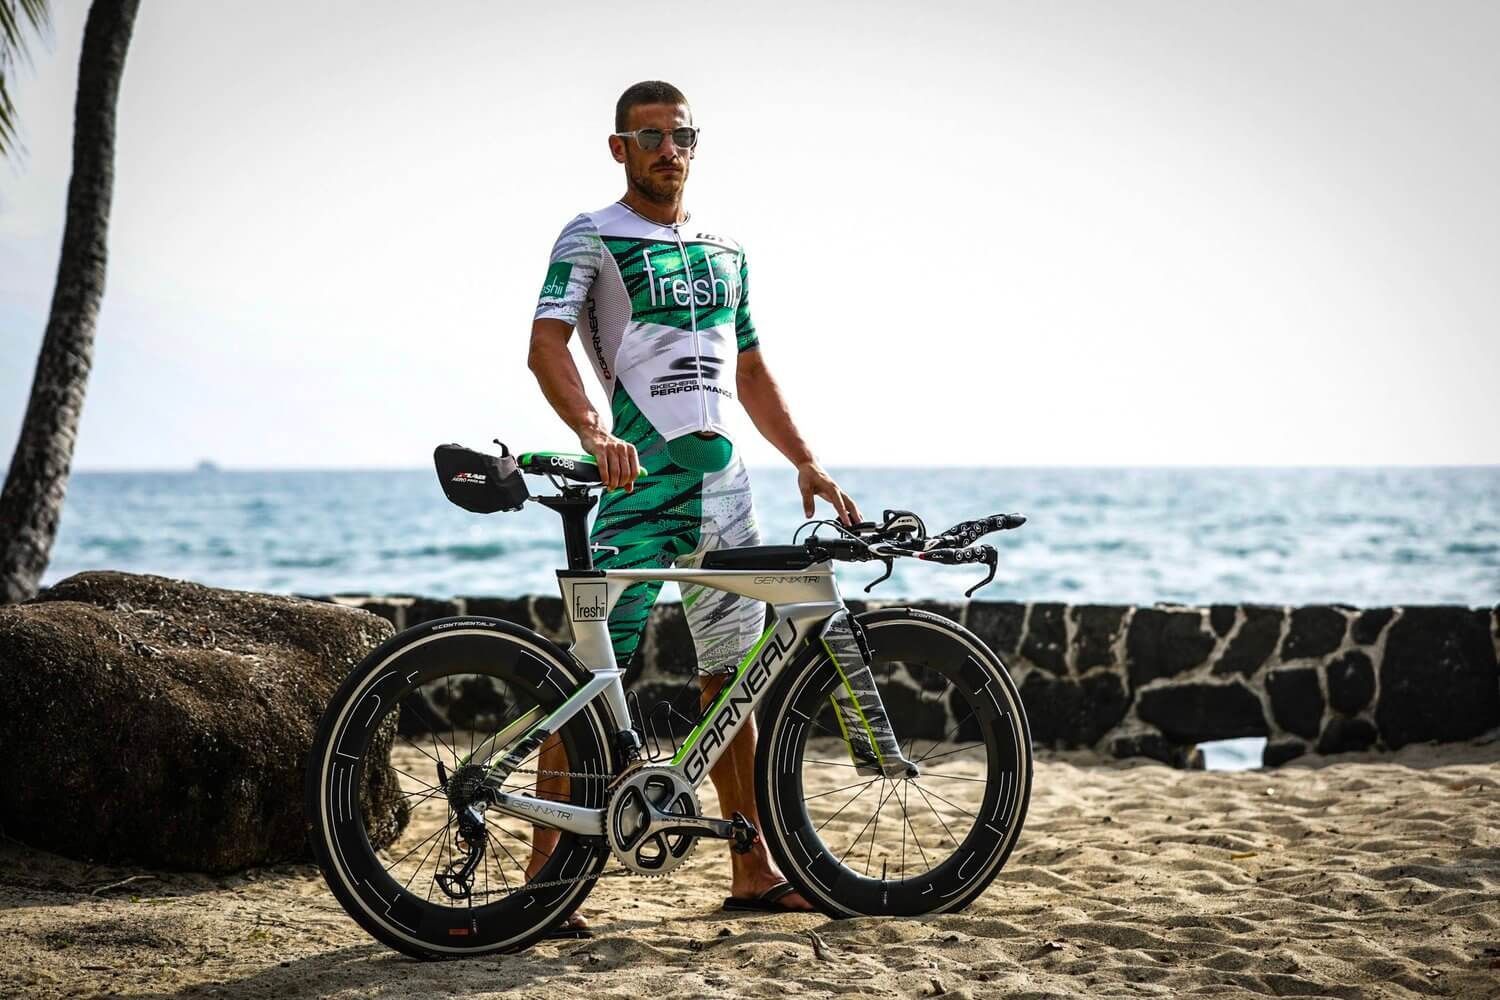 Lionel-Sanders-Ironman-Hawaii